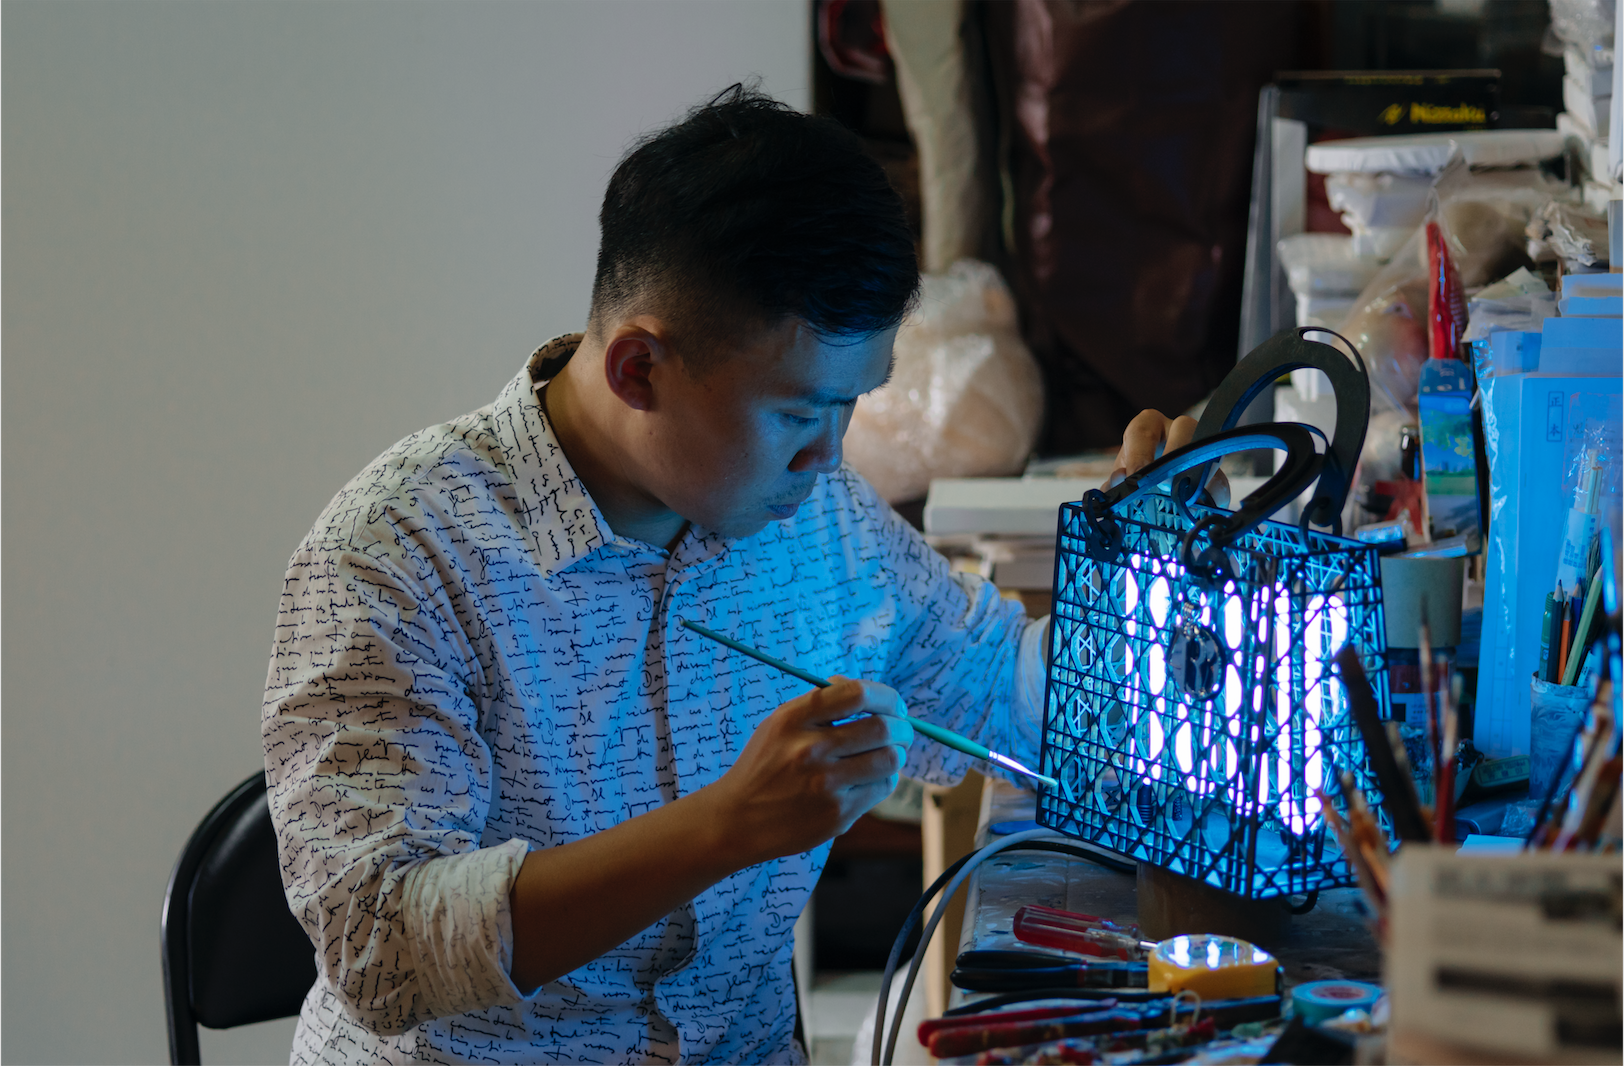 Liu Chih Hung working on his rendition of the Lady Dior bag.